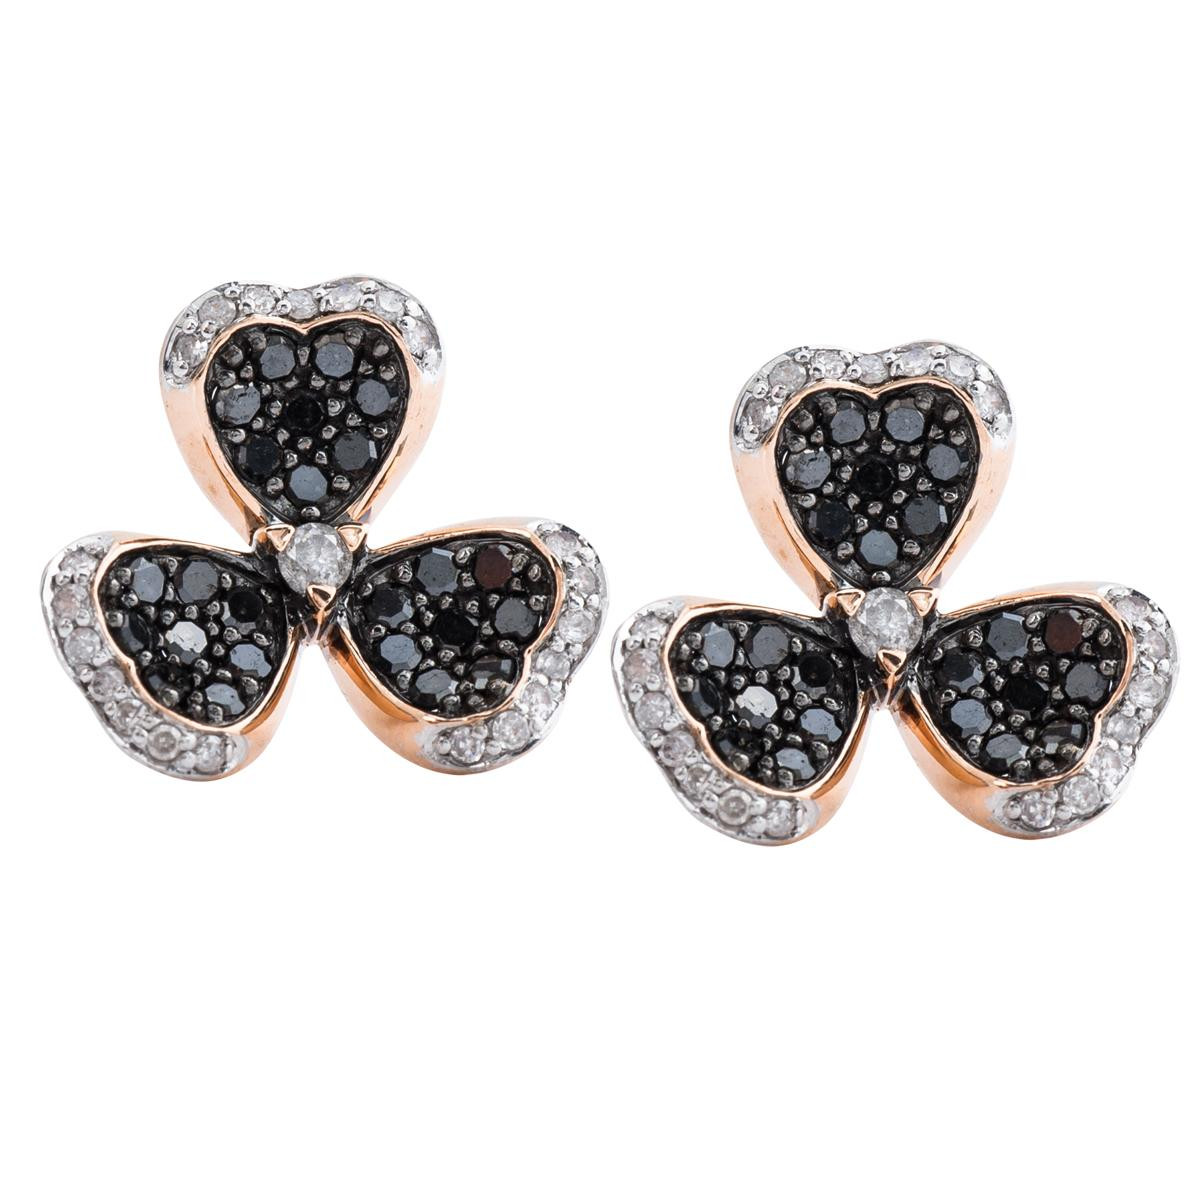 New 0.75 CTW Black & White Diamond Clover Earrings